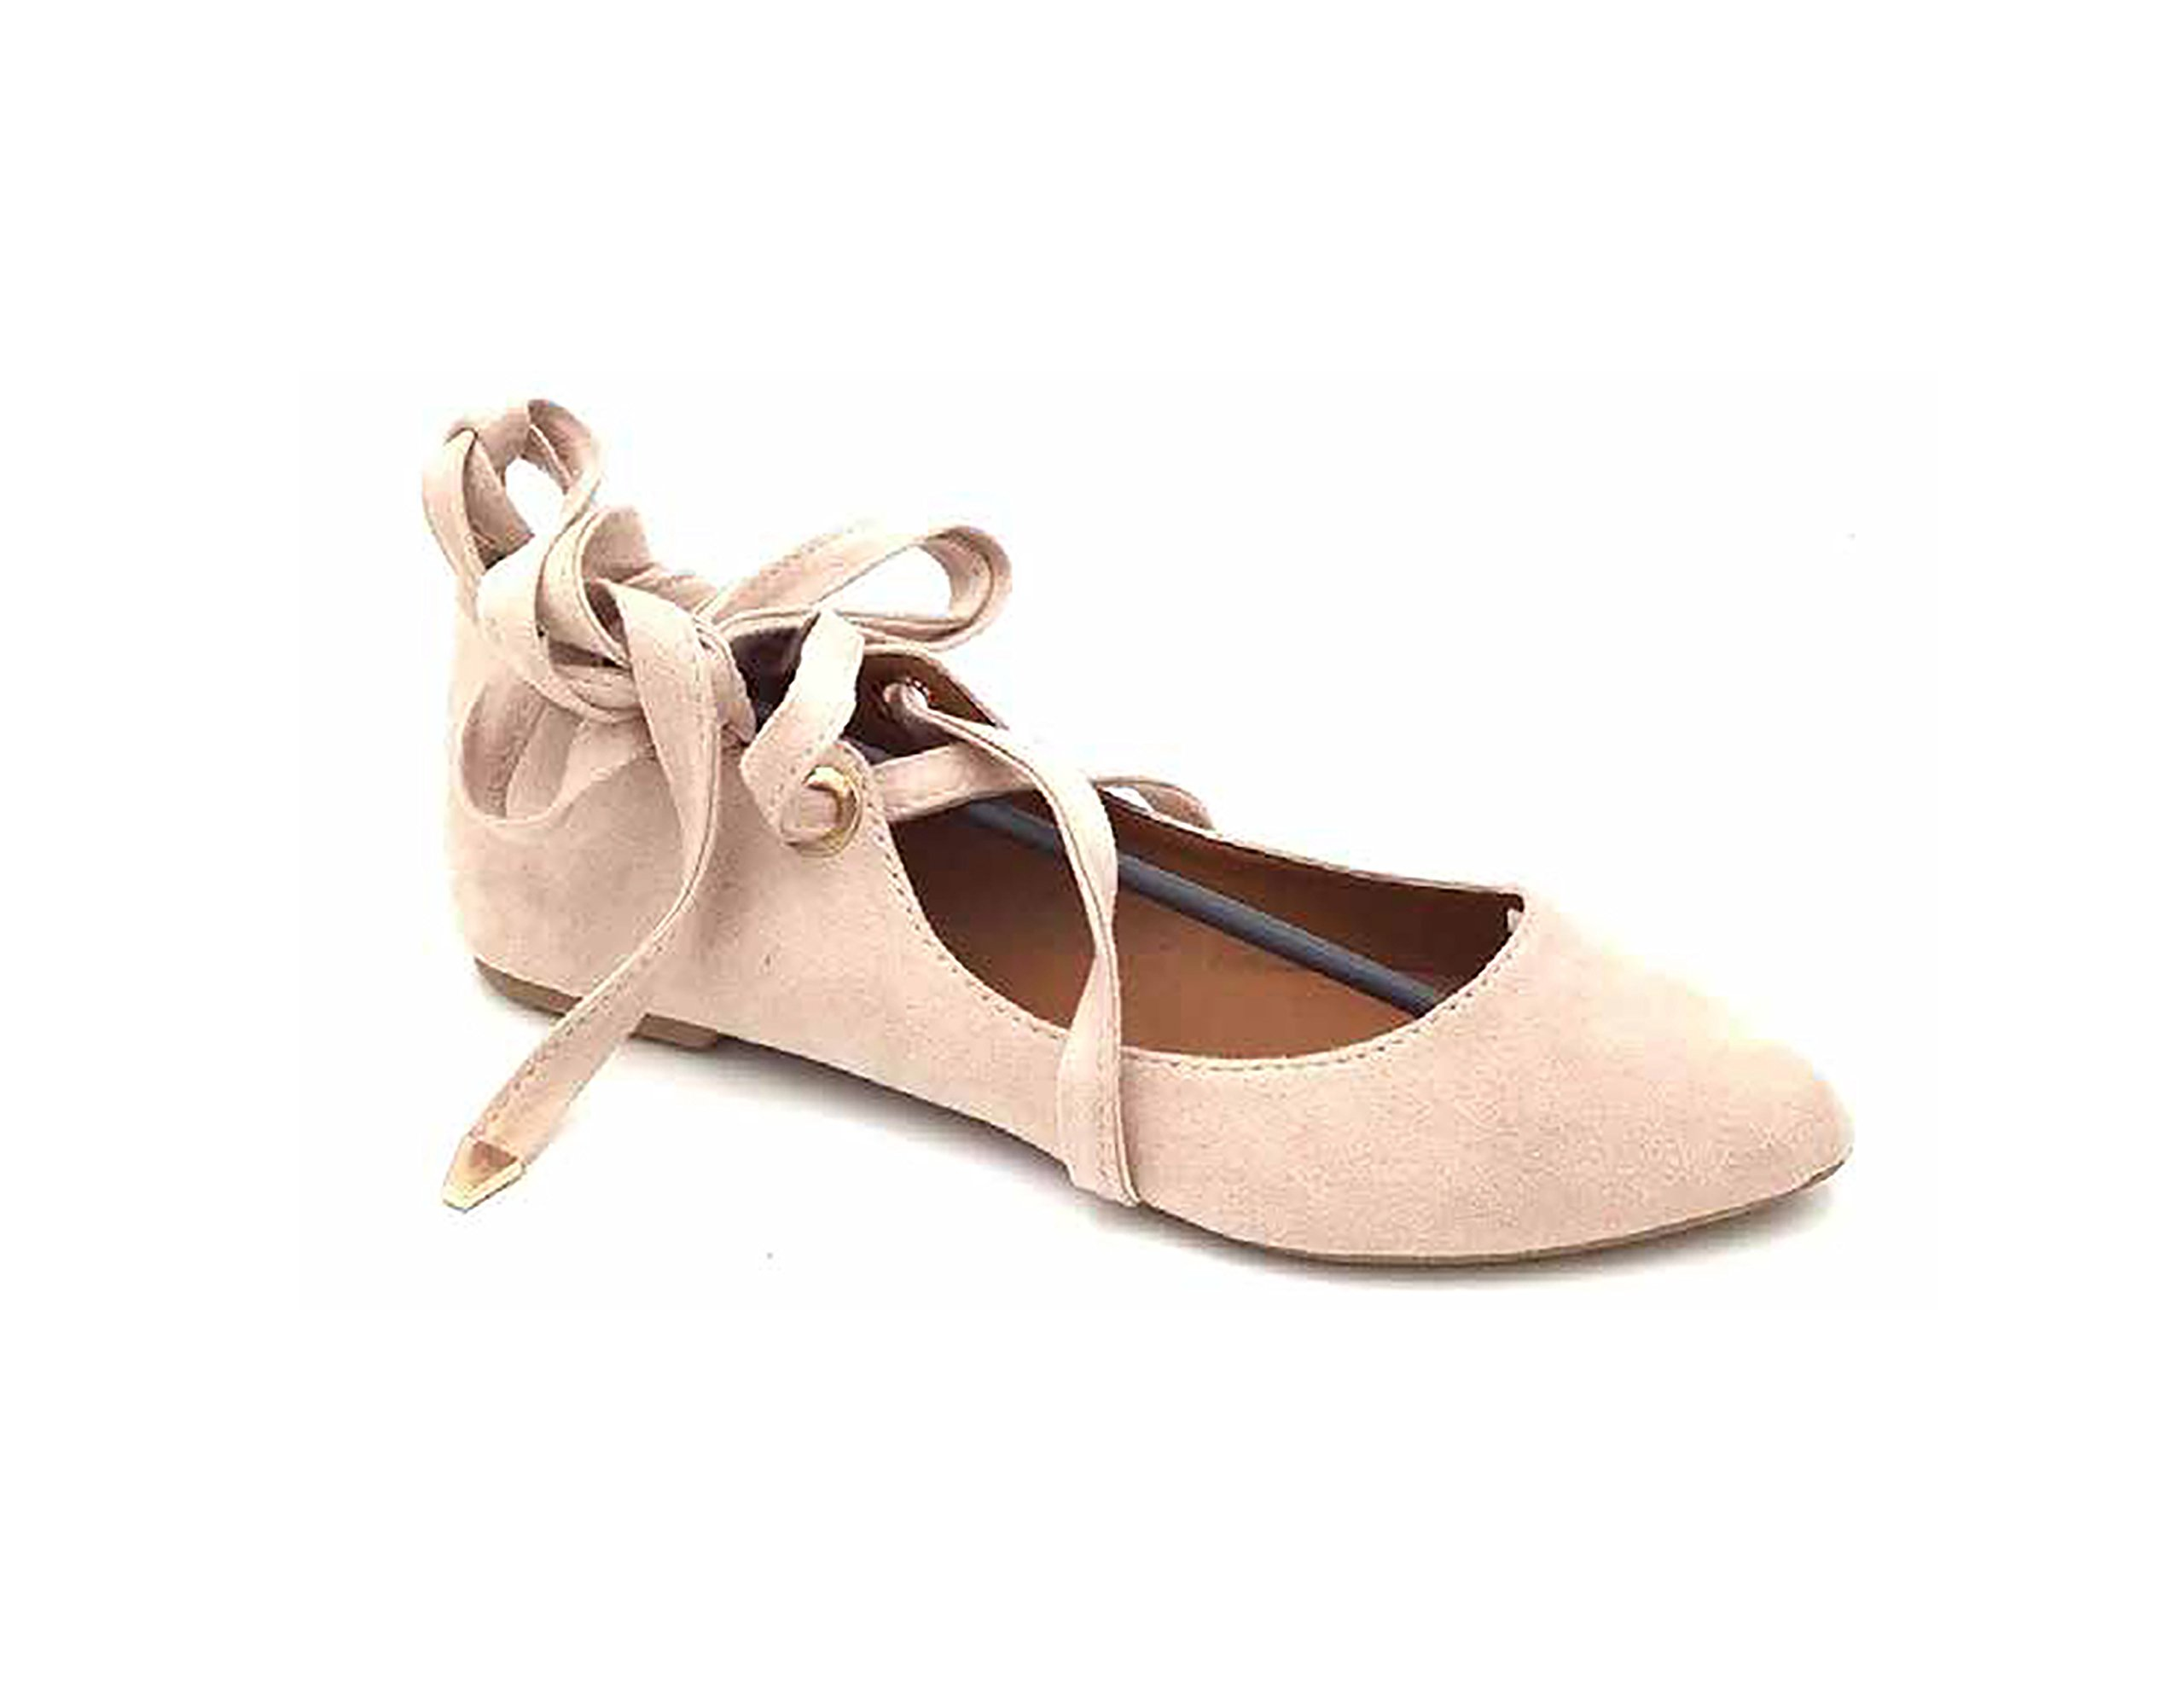 Women's Faux Suede Pointed Toe Ankle Strap Lace up Flat Ballerina Shoes (10, Tan)